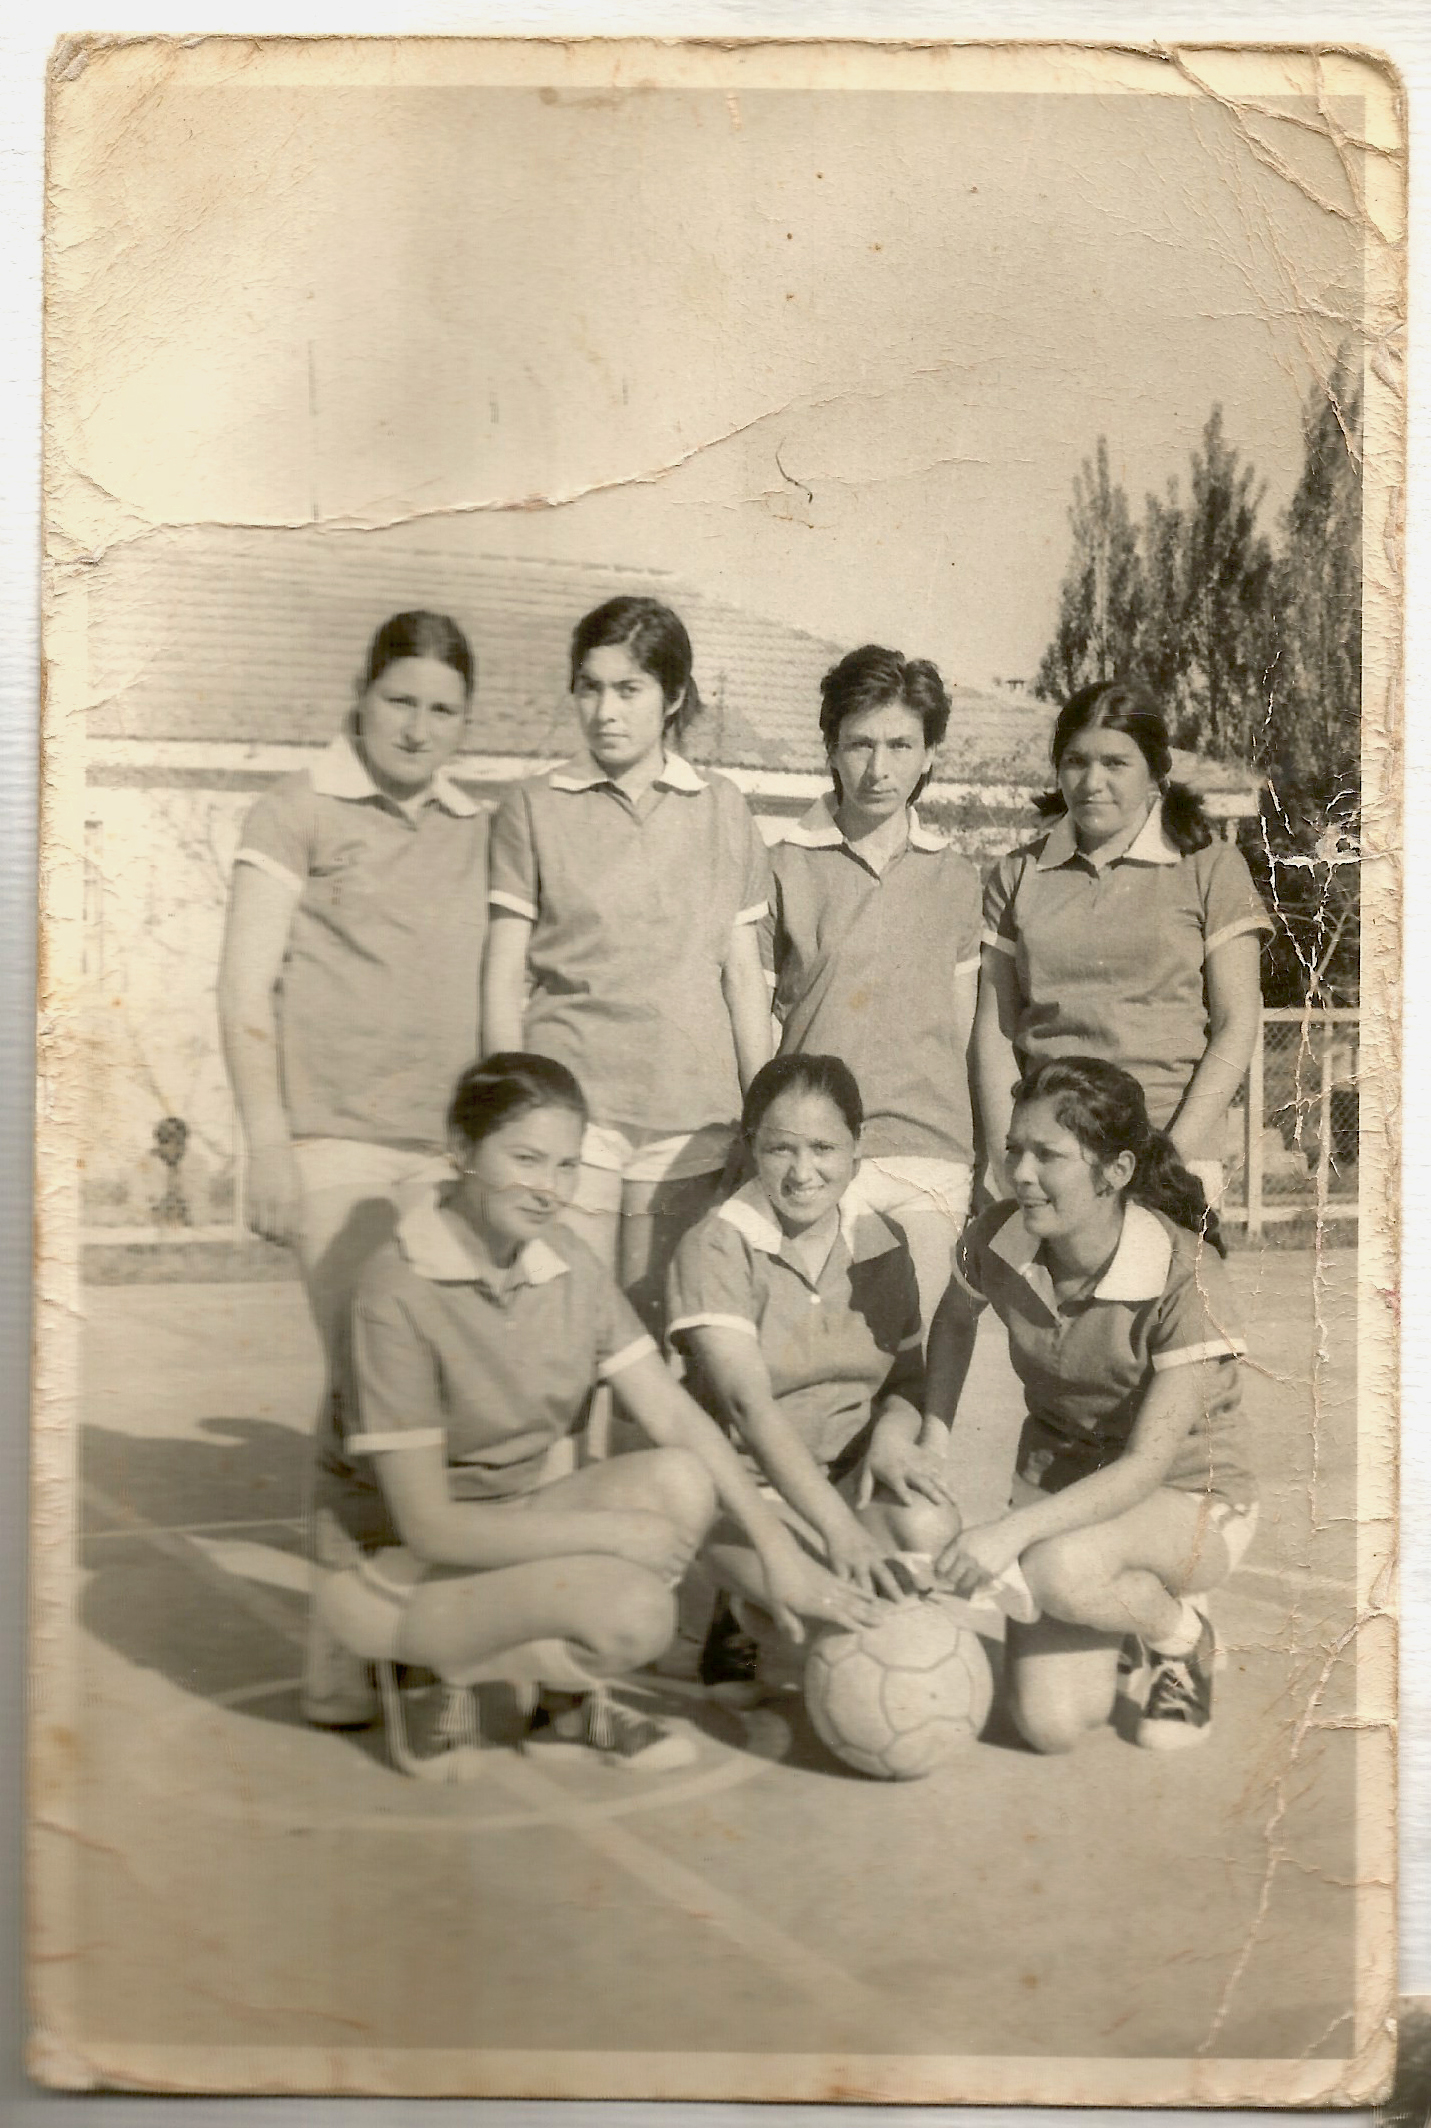 Enterreno - Fotos históricas de chile - fotos antiguas de Chile - Equipo de Básquetbol Hospital Sanatorio El Pino, 1964